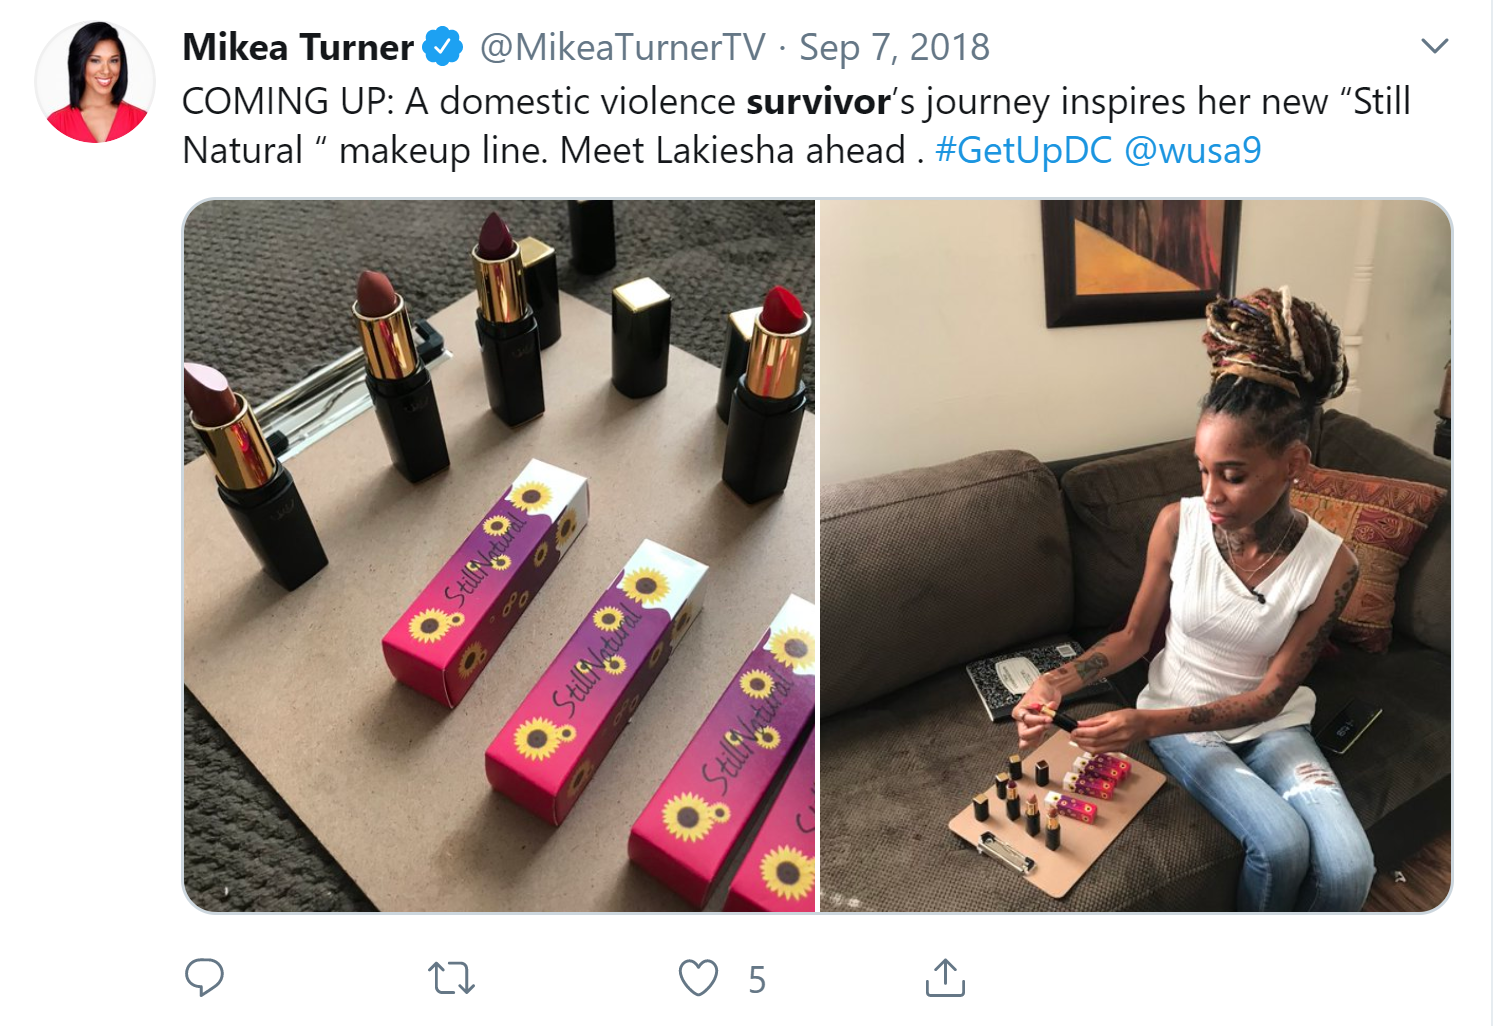 Mikea Turner promoting the Allen family's beauty company in 2018 (Screenshot)